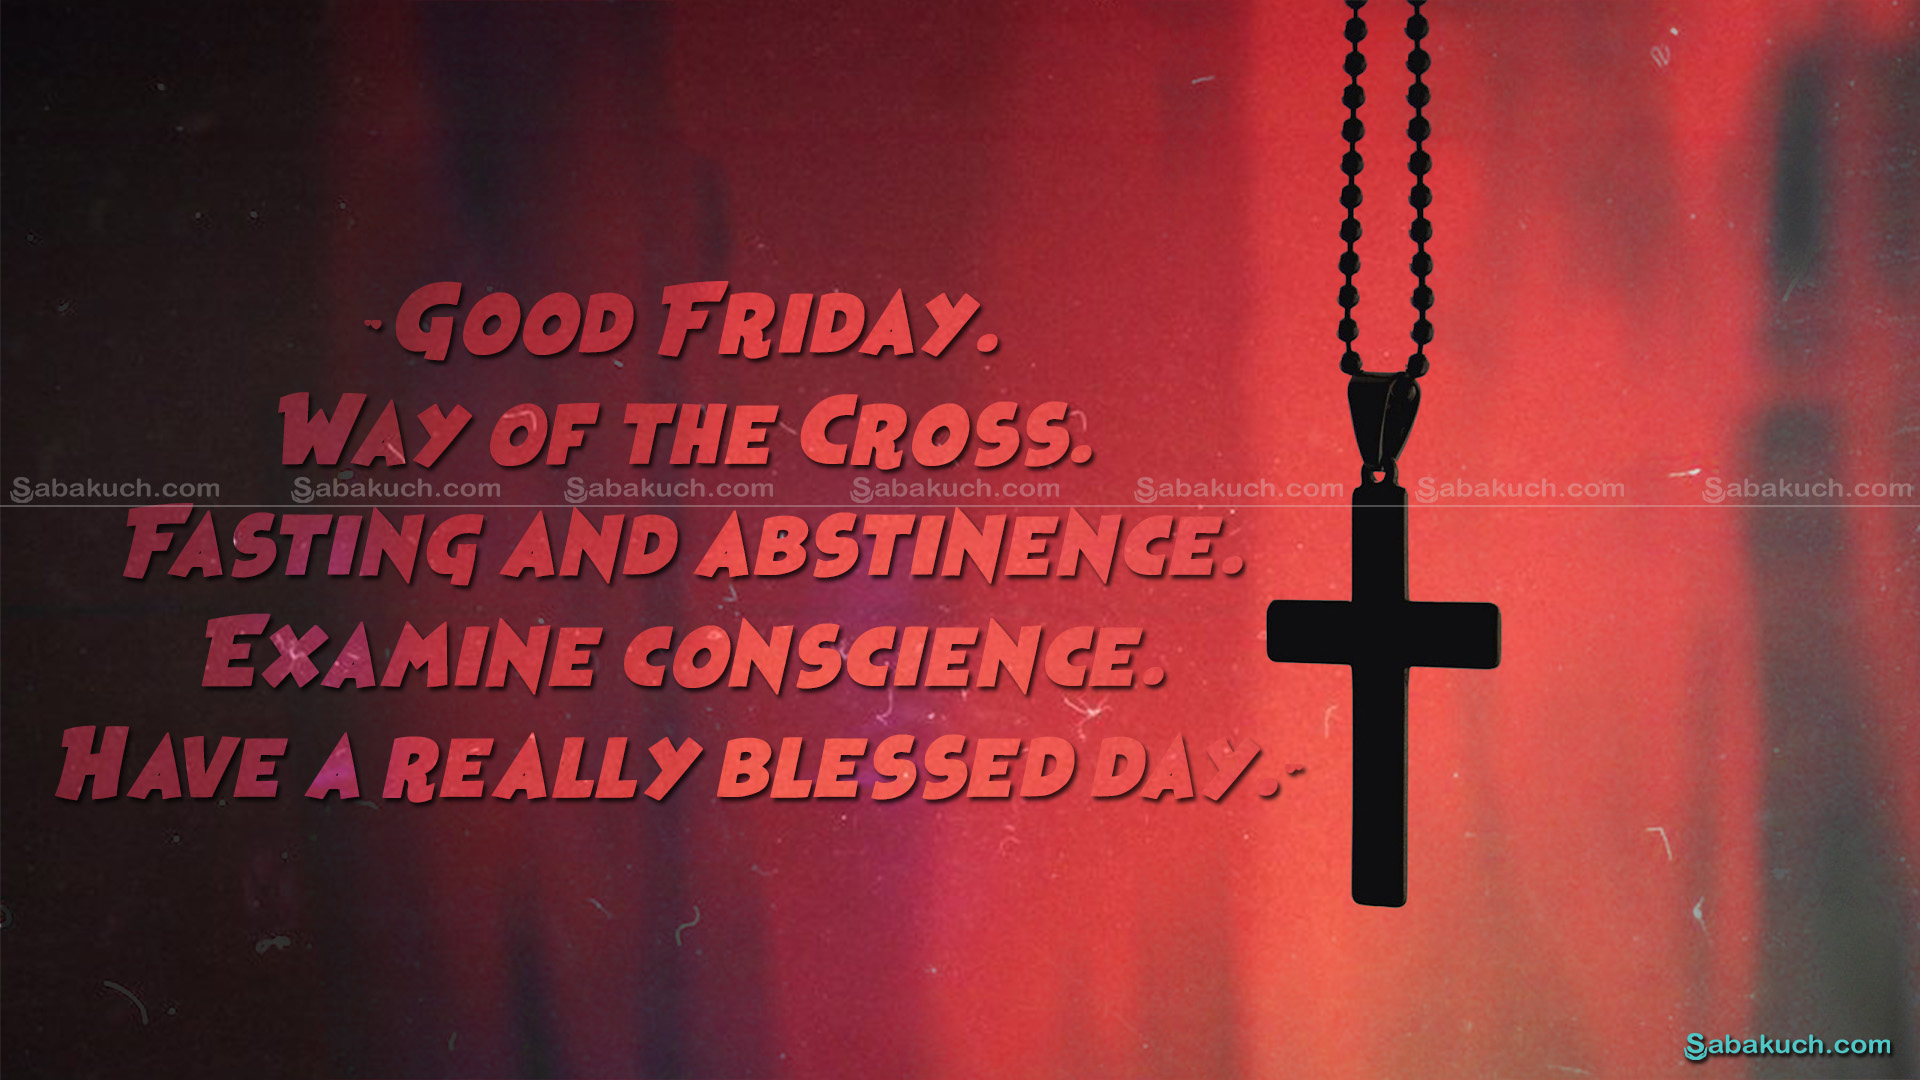 Good Friday 14aapr